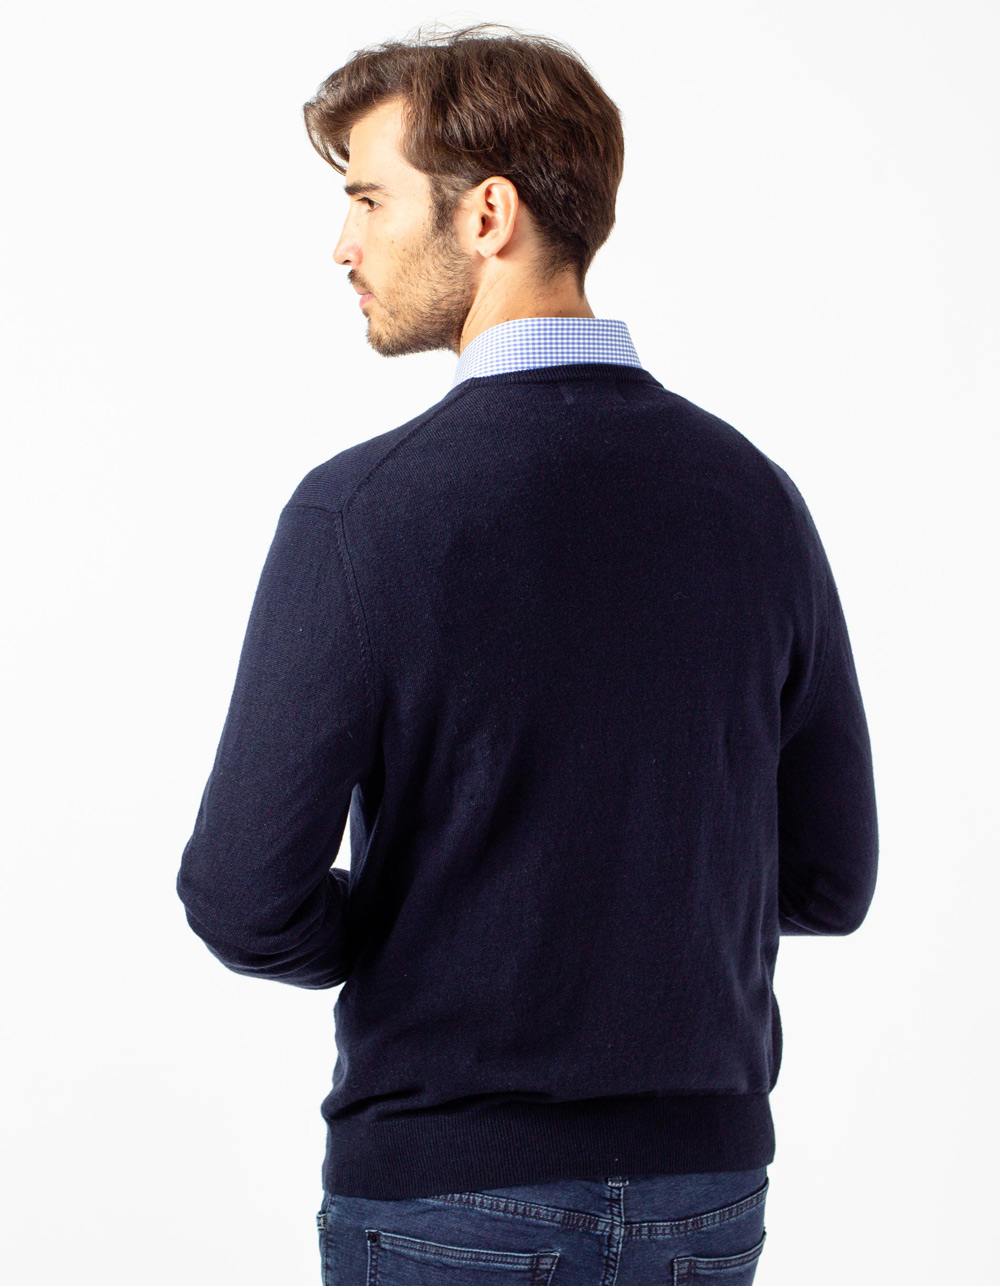 Navy blue crew neck sweater - Backside